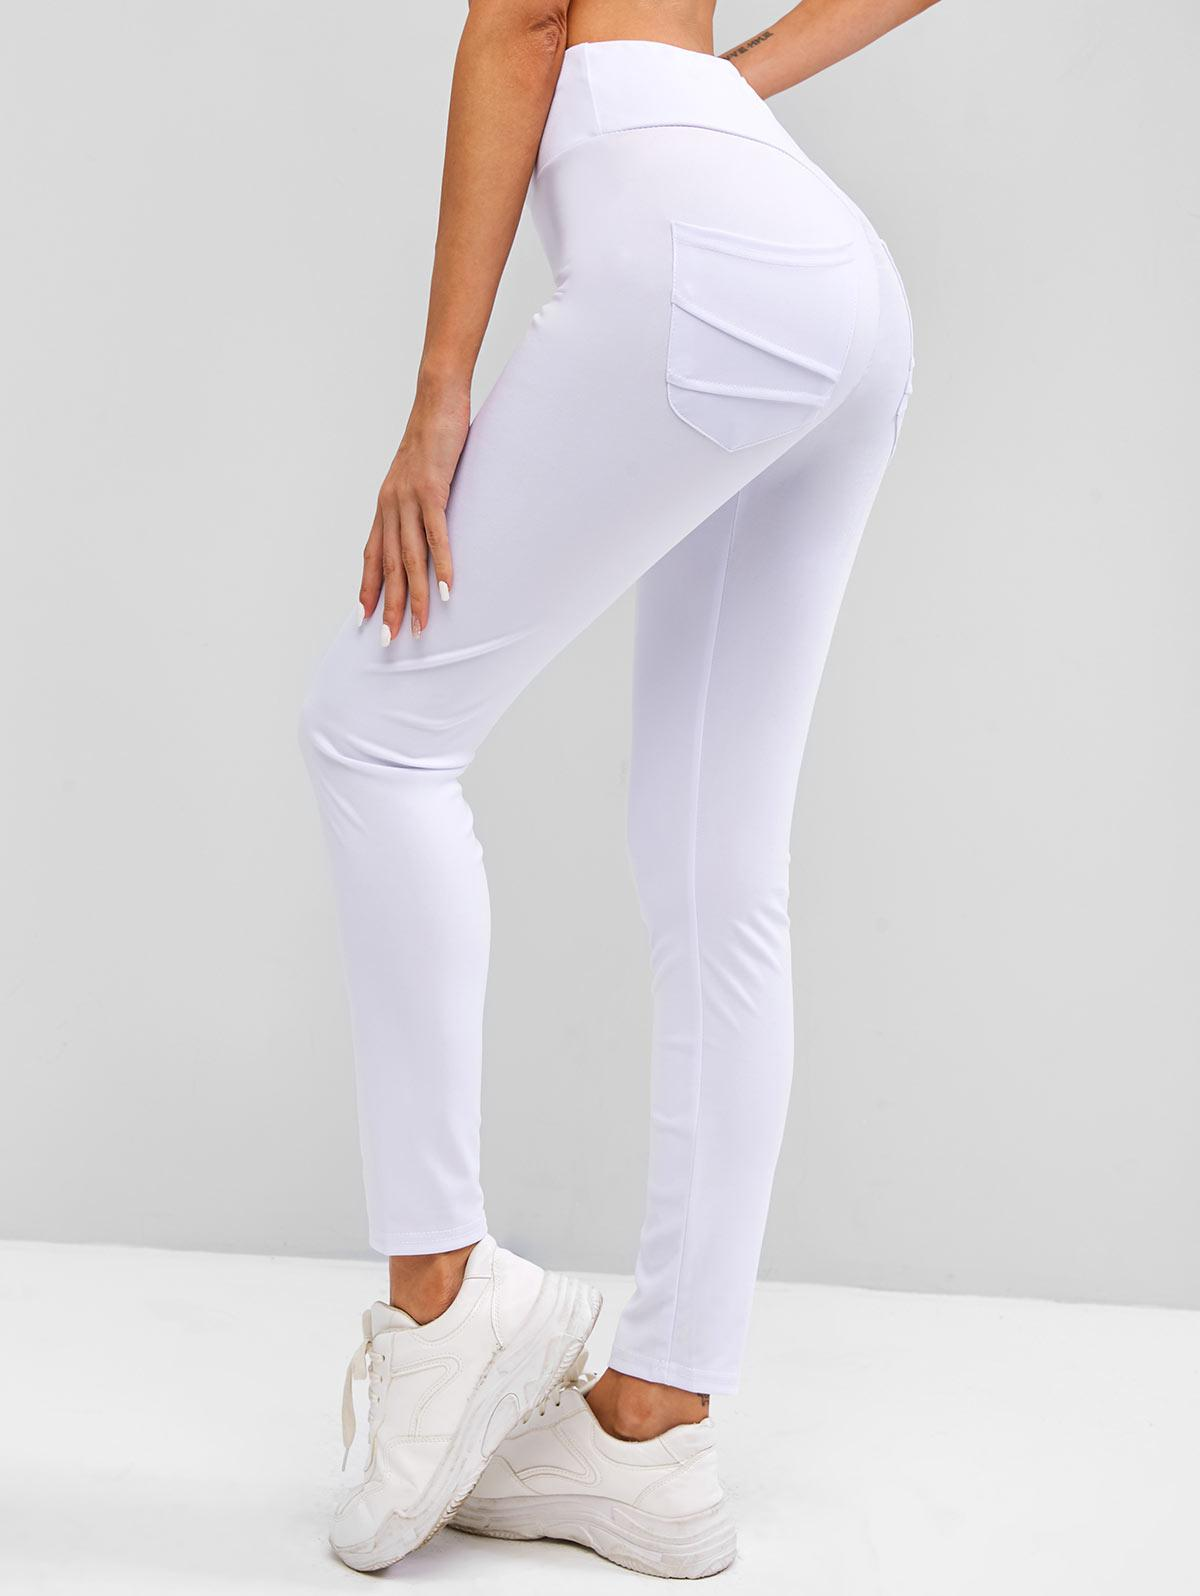 Scrunch Bum Lifted Pocket Wide Waistband Leggings